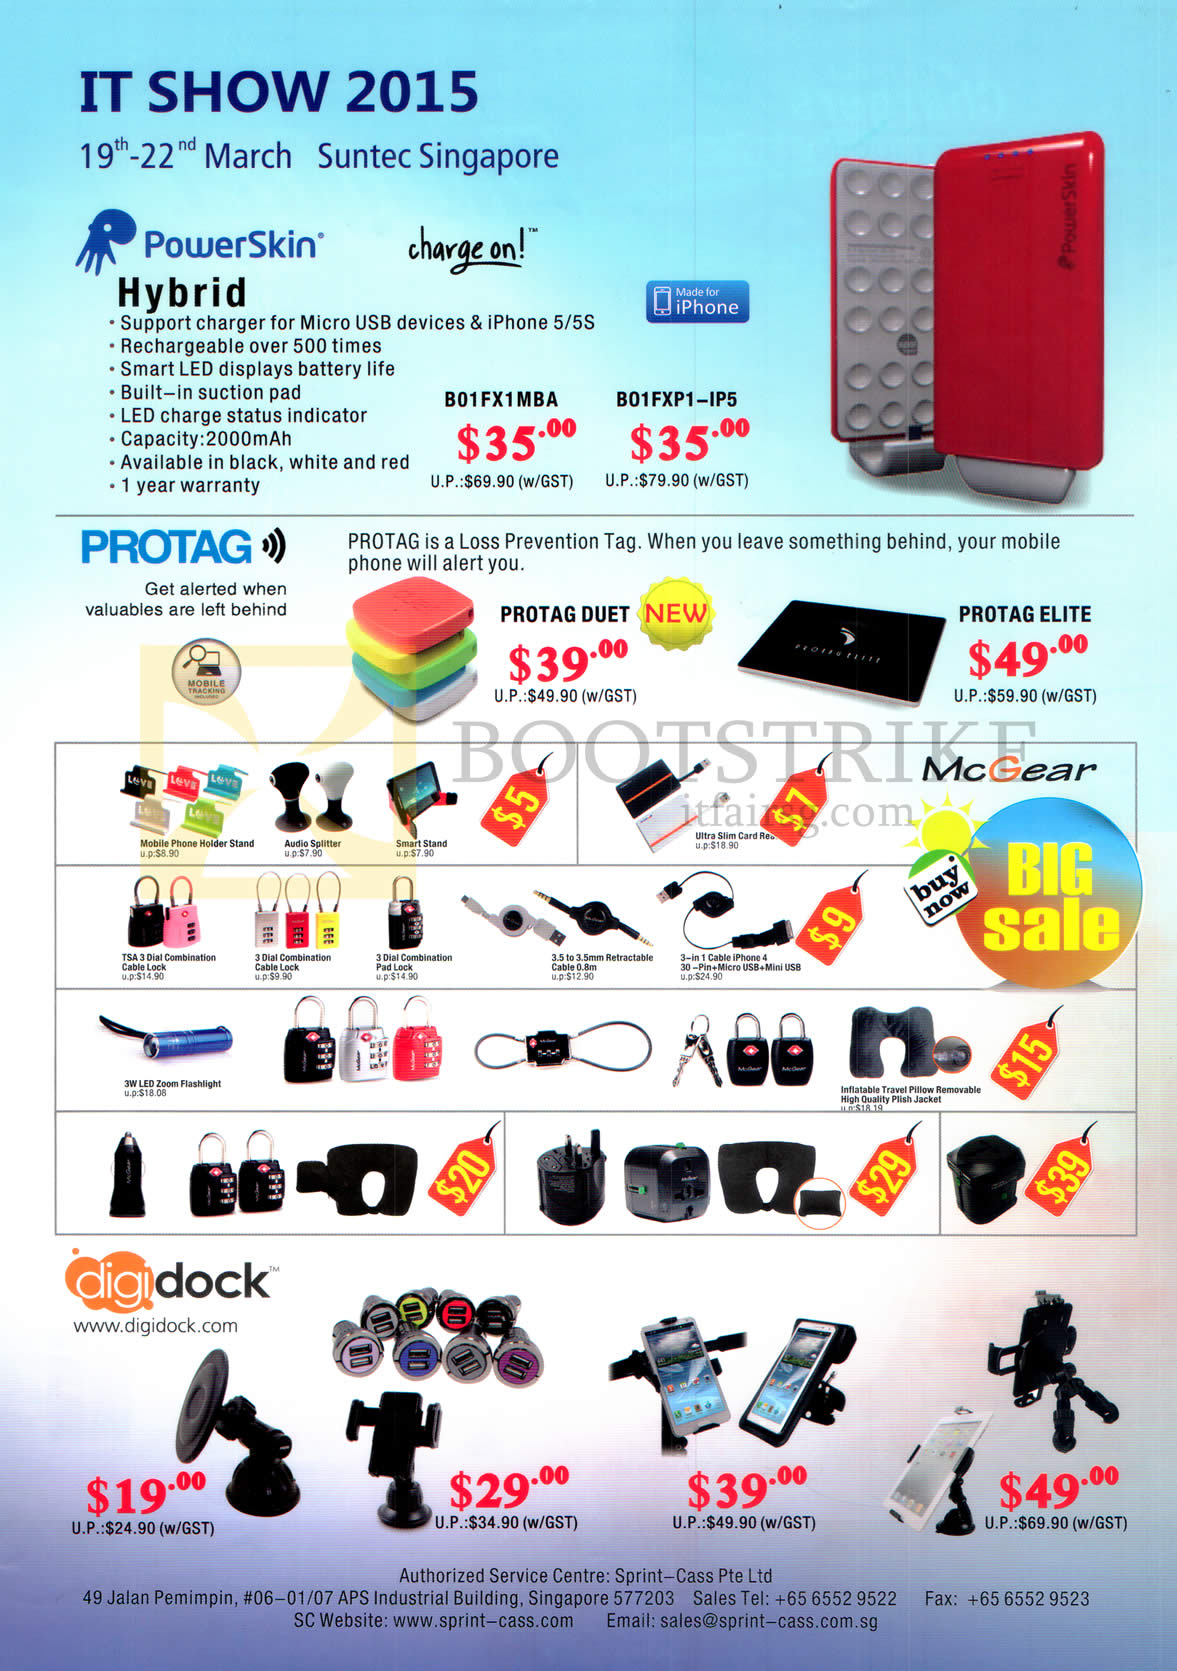 IT SHOW 2015 price list image brochure of Sprint-Cass PowerSkin Power Banks, Protag Accessories, Digidock Docking Stations